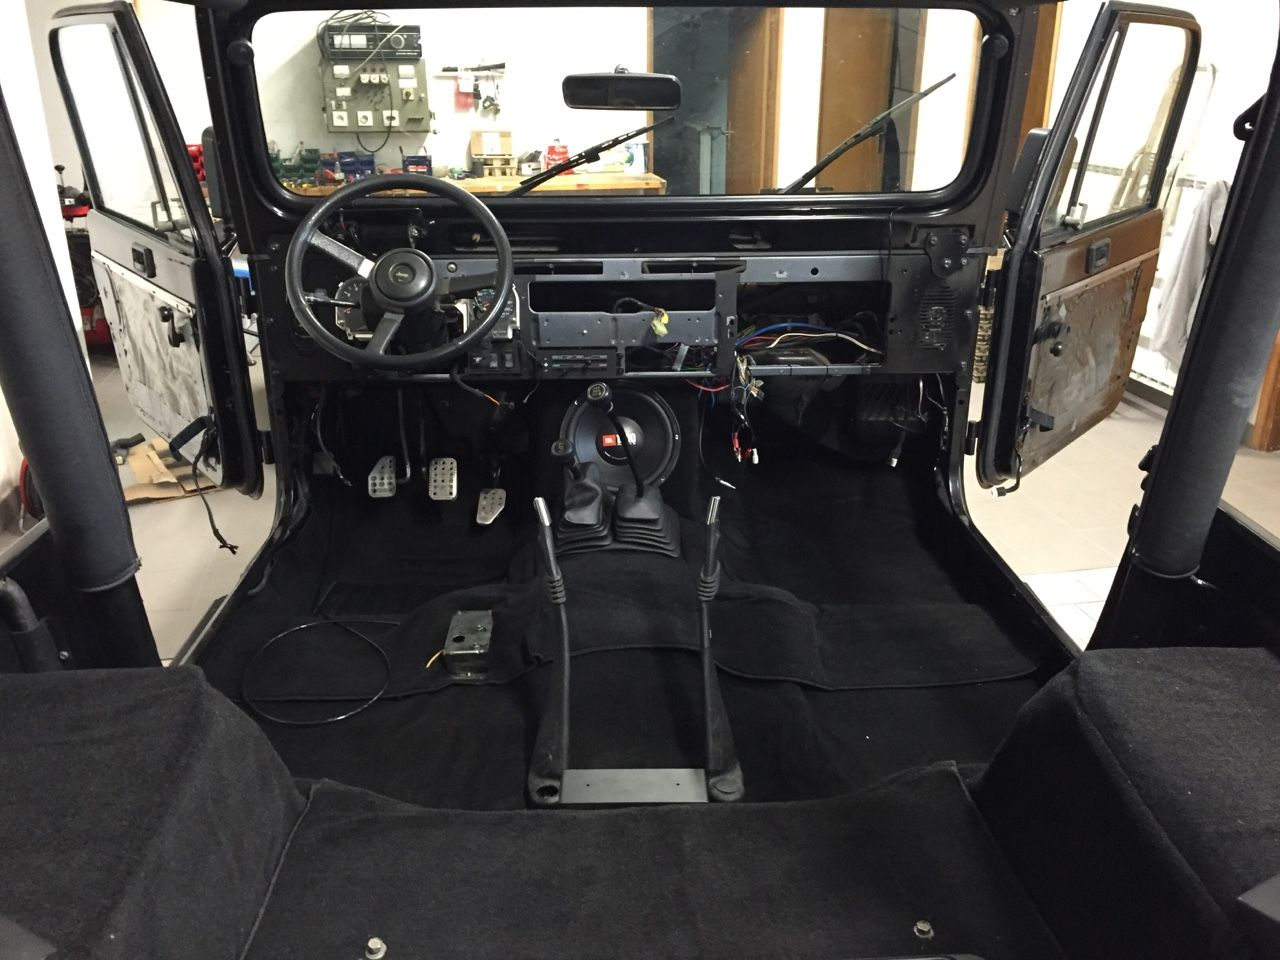 My Jeep Wrangler Yj Interior Installed New Carpet And Sound Sistem Into My Yj Jeep Wrangler Yj Jeep Jeep Wrangler